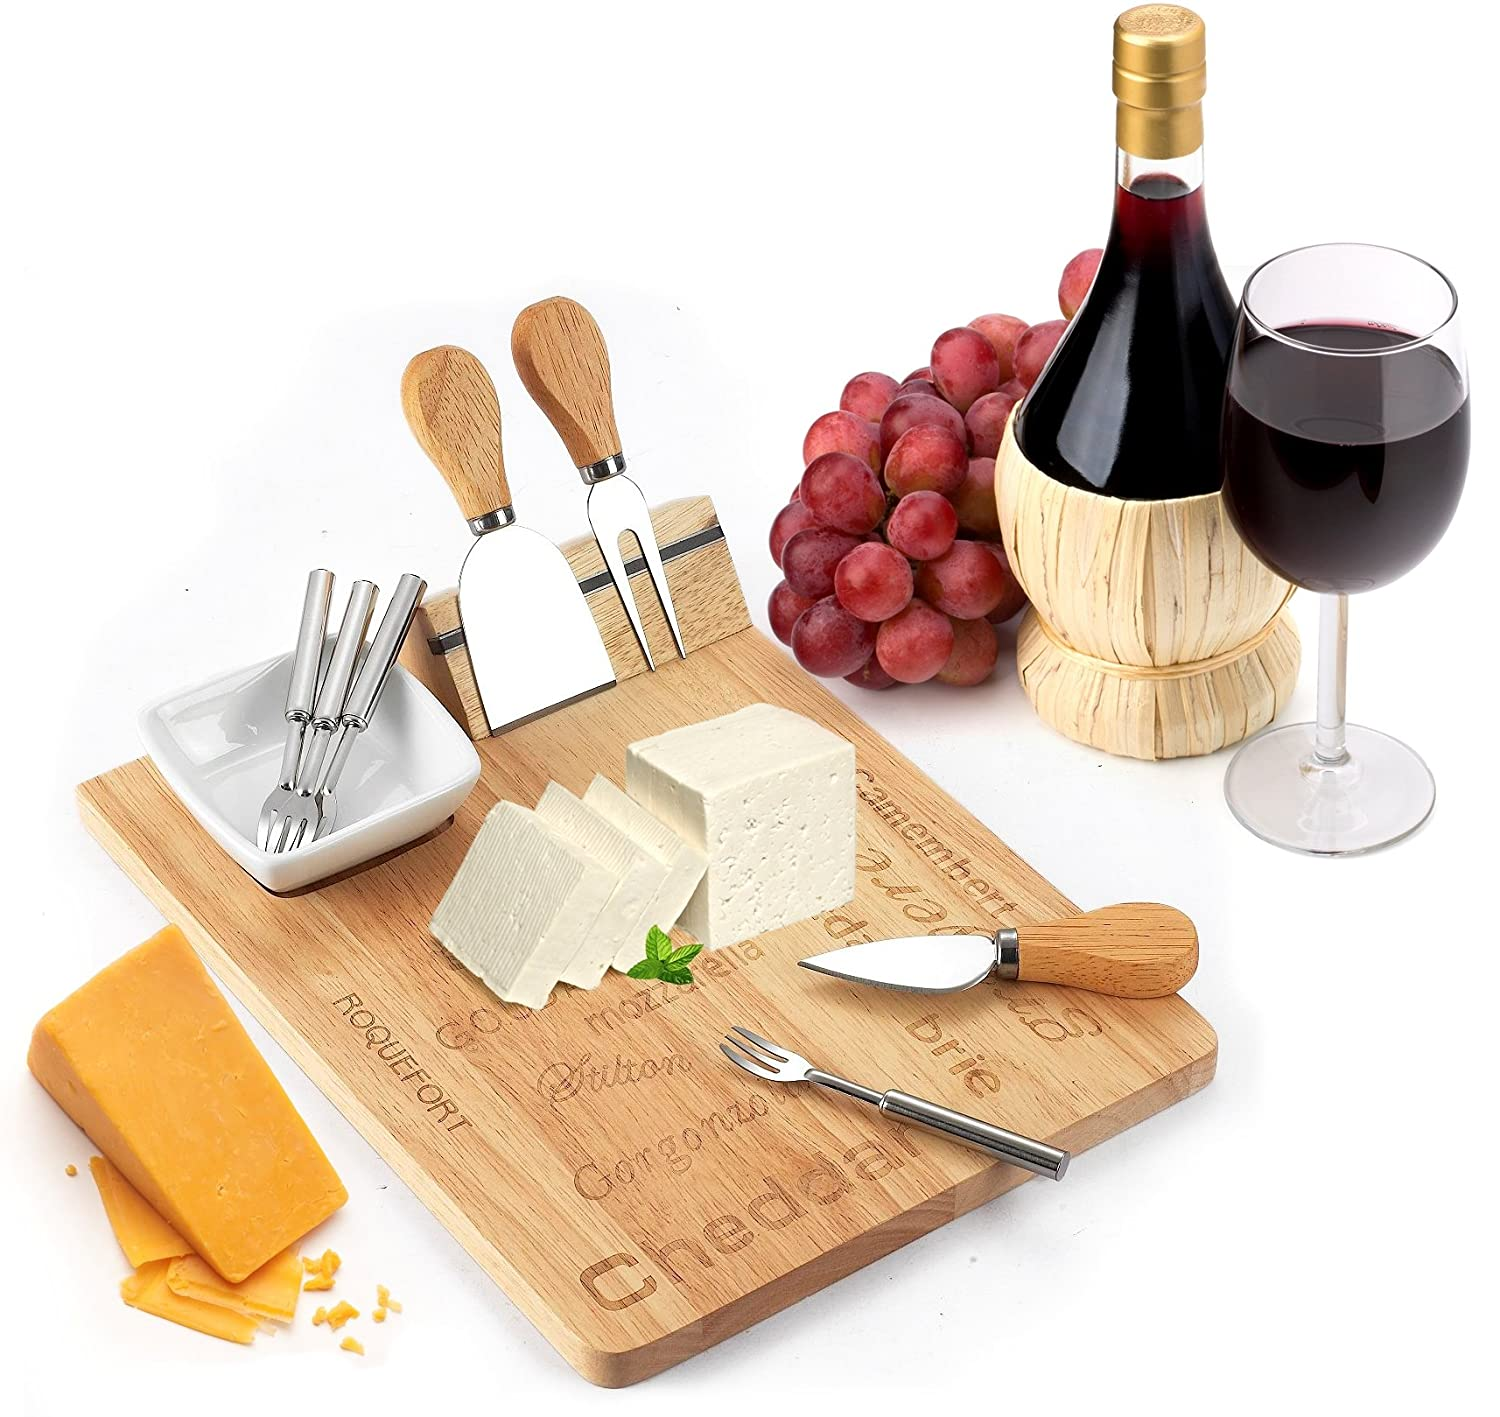 Amazon.com | Cheese Board Set - Set Includes 3 Piece Cheese Knife Set u0026 4 Small Cheese Serving Forks - Plus Porcelain Dish for Sauces u0026 Condiments by ...  sc 1 st  Amazon.com & Amazon.com | Cheese Board Set - Set Includes 3 Piece Cheese Knife ...